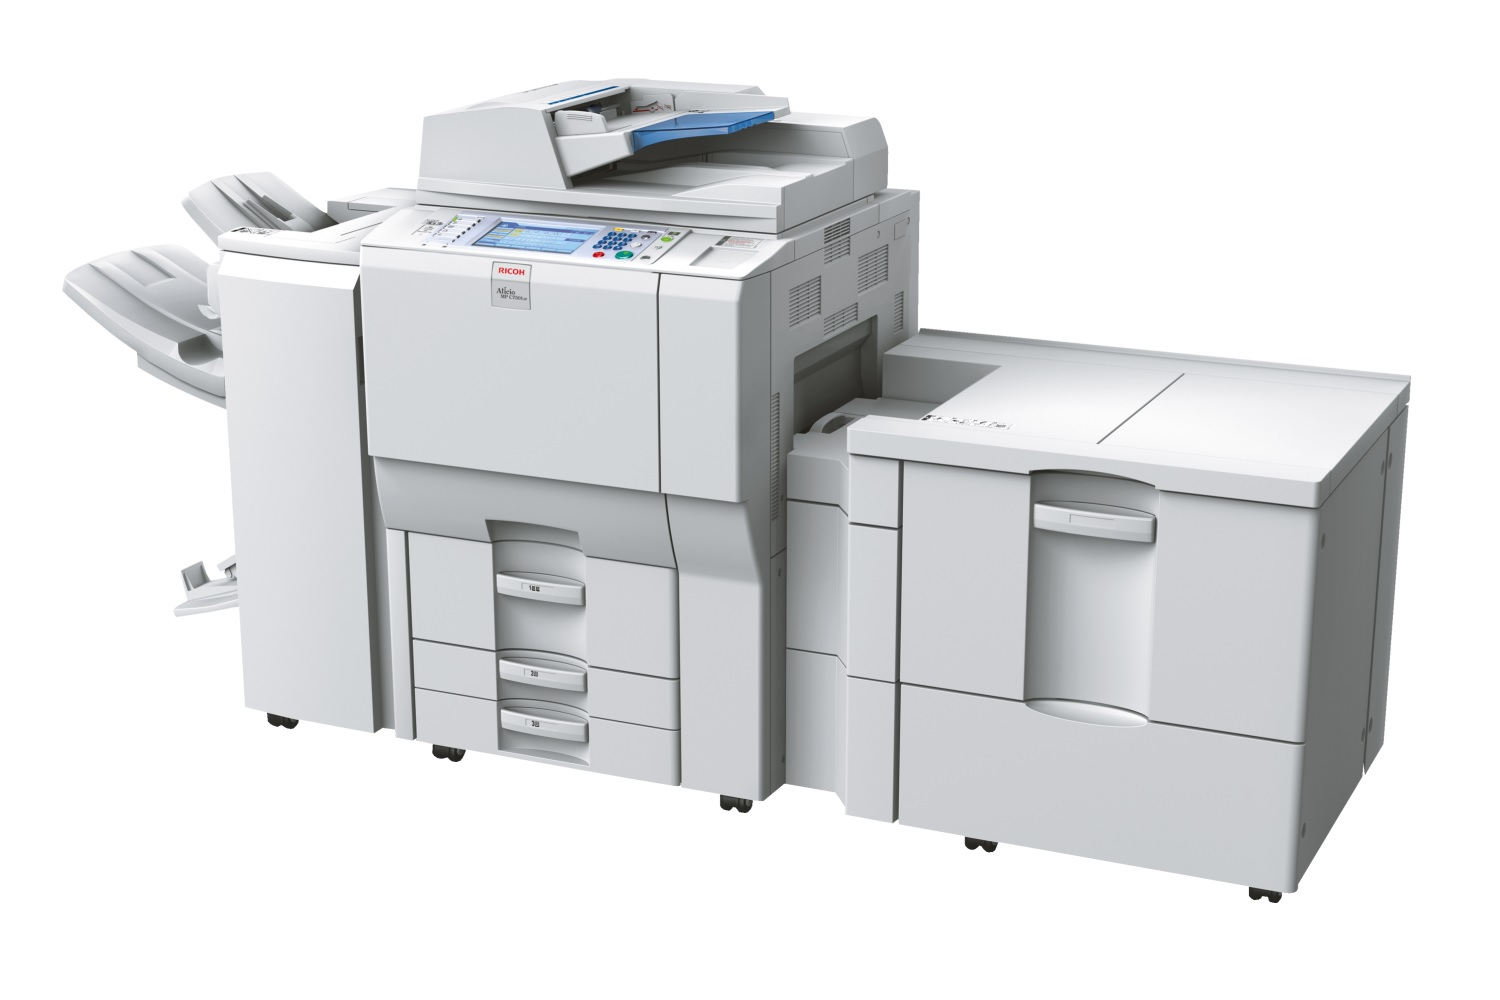 RICOH AFICIO MP C400 MULTIFUNCTION PS WINDOWS 7 DRIVERS DOWNLOAD (2019)